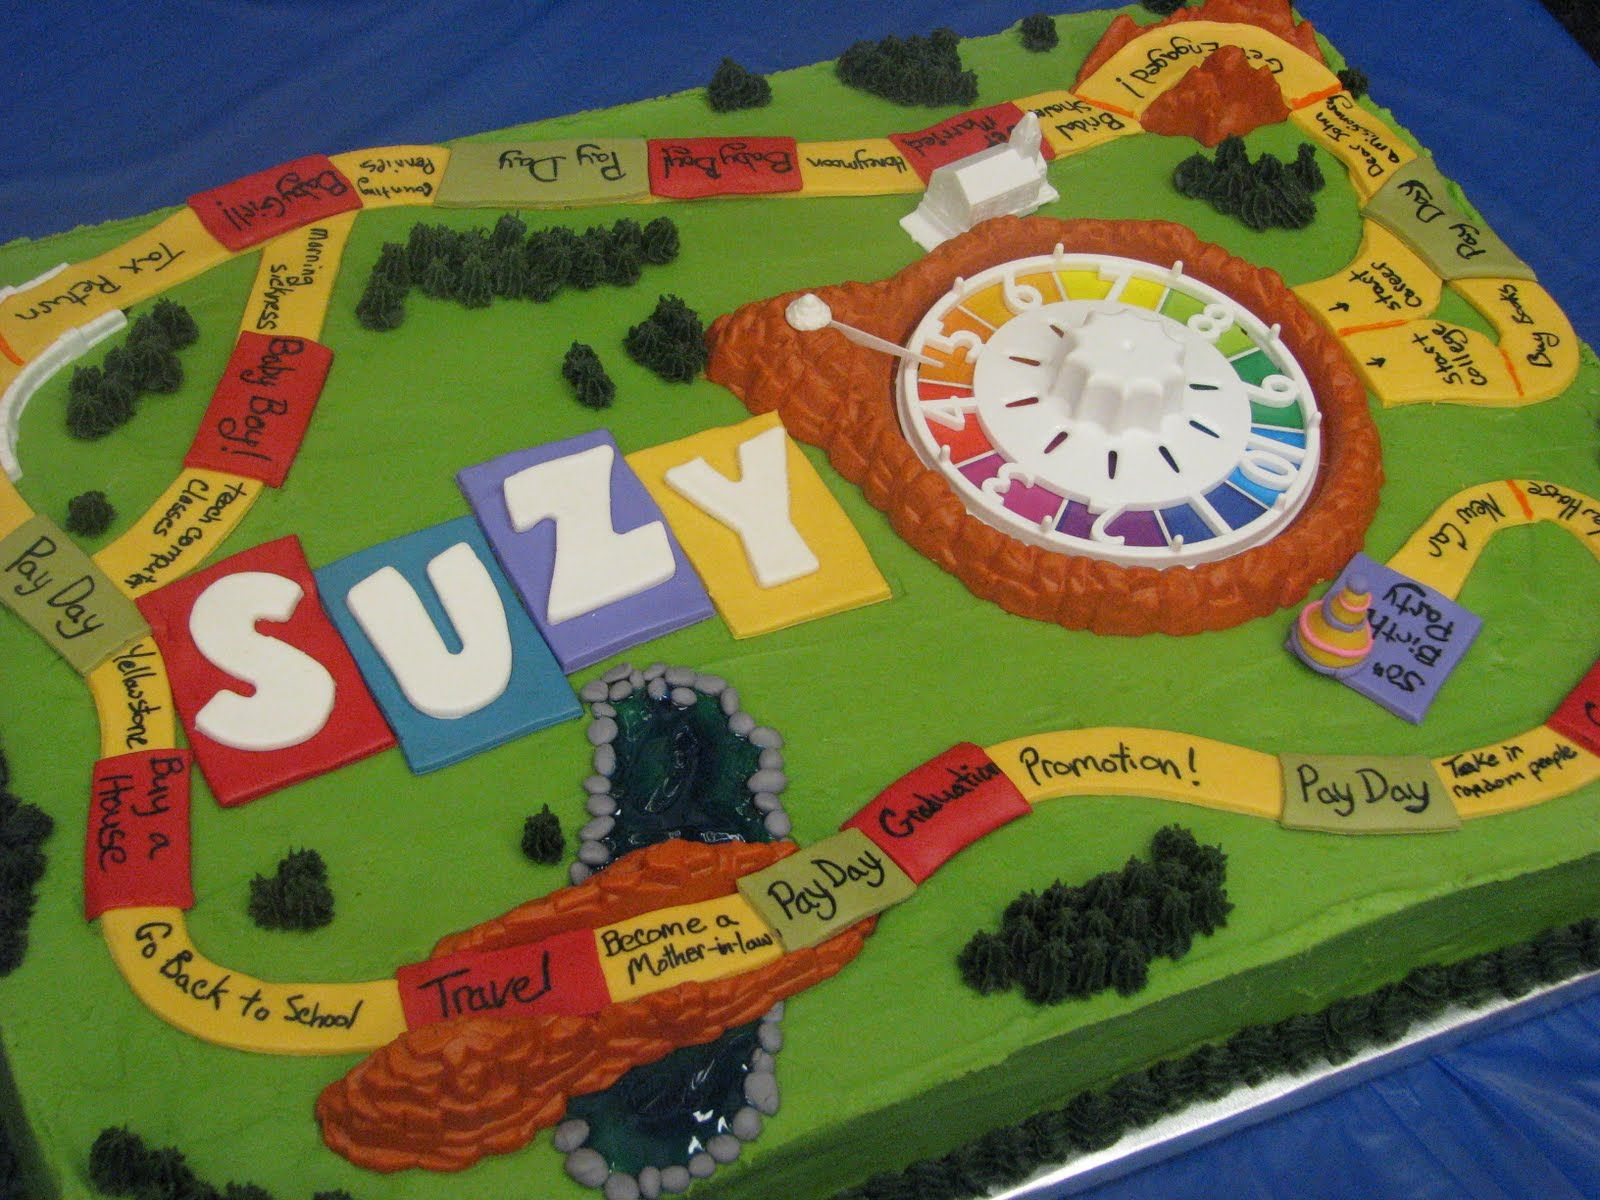 Bake Me A Cake The Game Of Life Cake With Images No Game